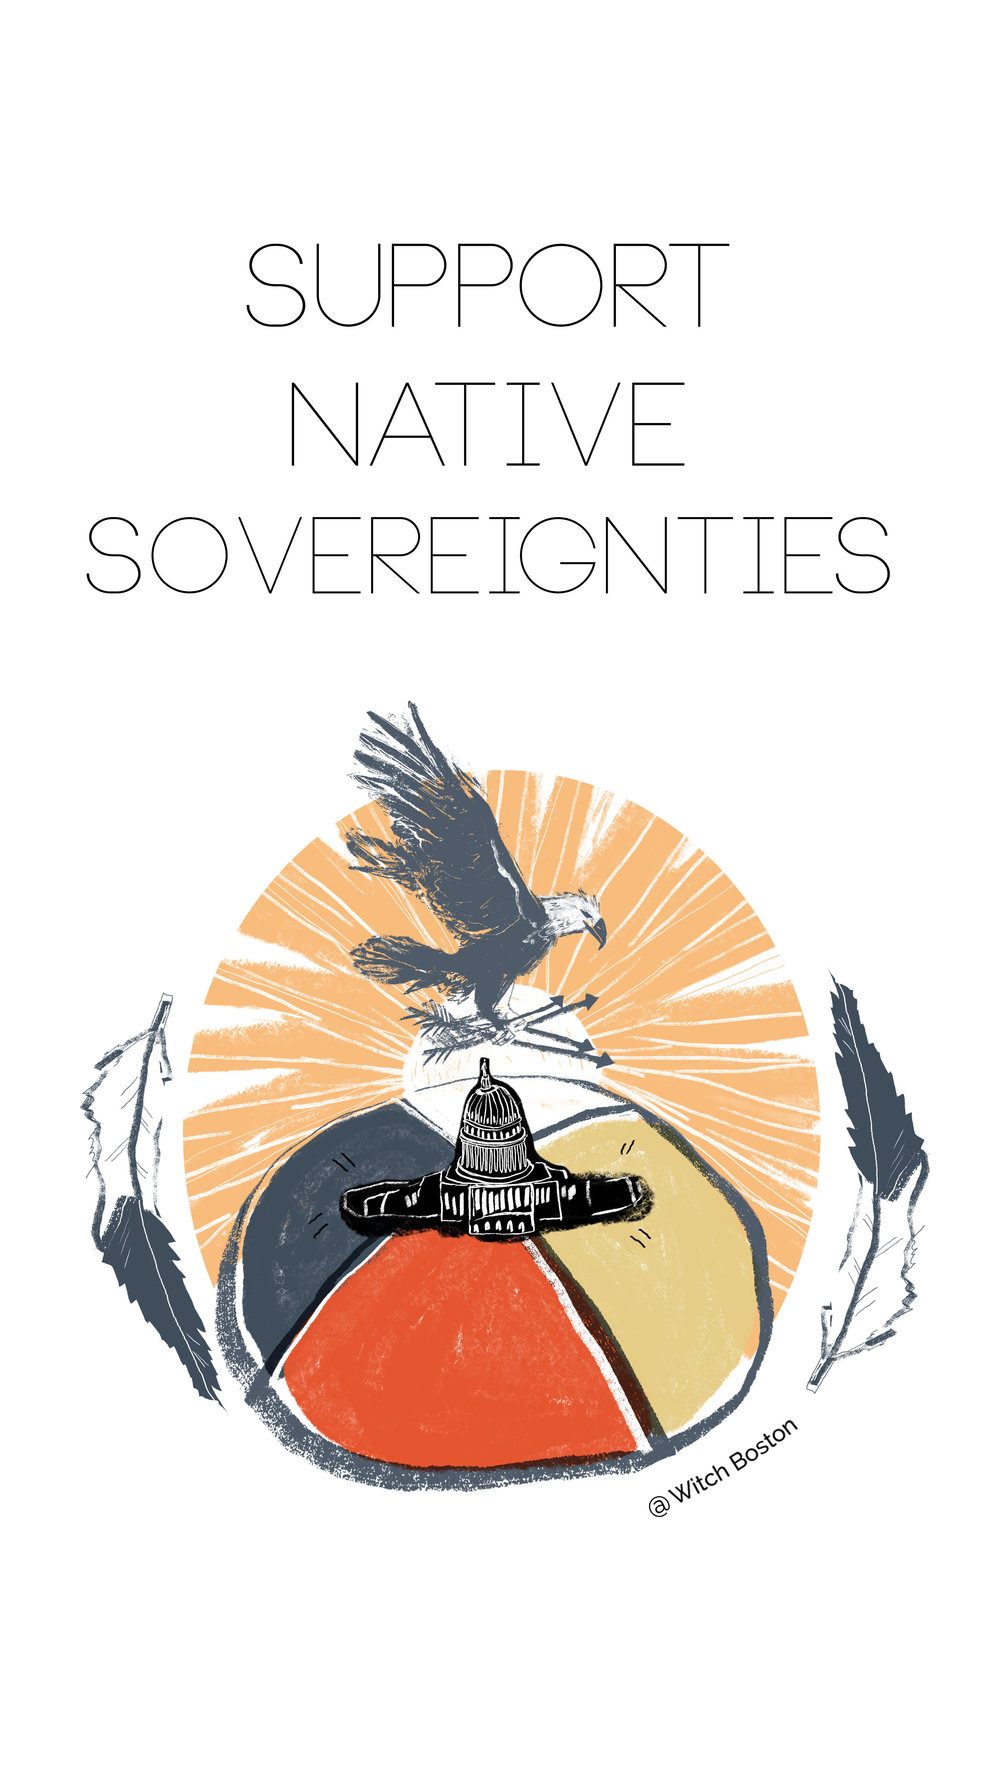 9-16_NATIVE_Sovereignties_witchboston.jpg